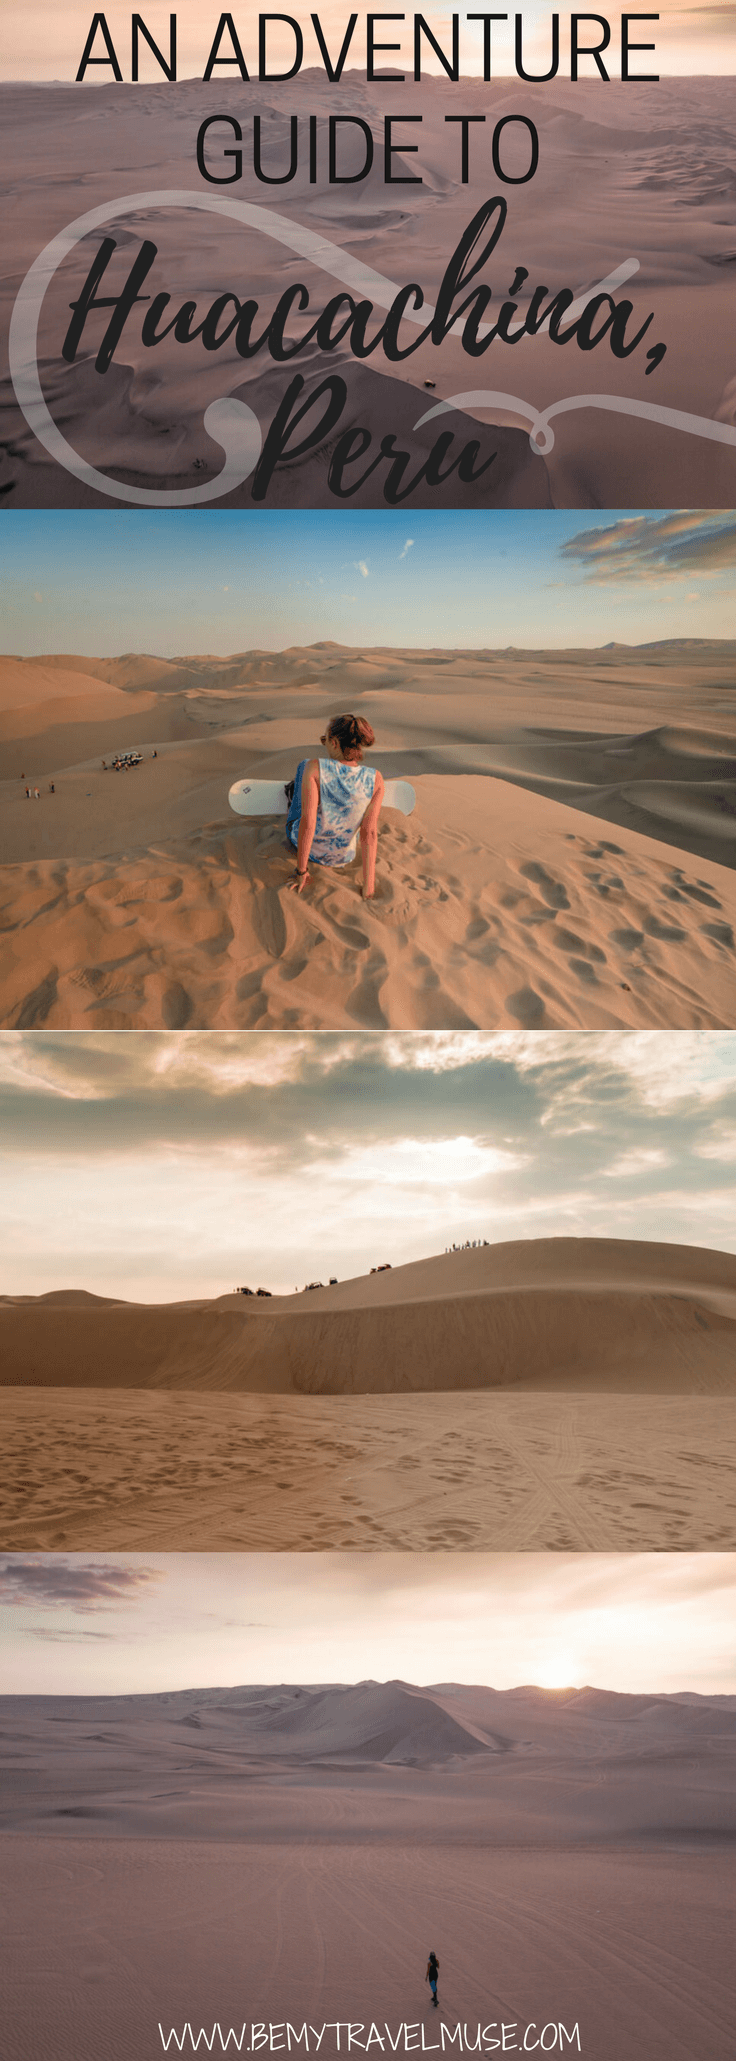 Here's an adventure guide to Huacachina, Peru, South America! Tips on getting there, sunrise vs sunset, Sand boarding, sledding, and dune buggy rides, accommodation guide and so much more   Be My Travel Muse   #Peru #Huacachina #SouthAmerica